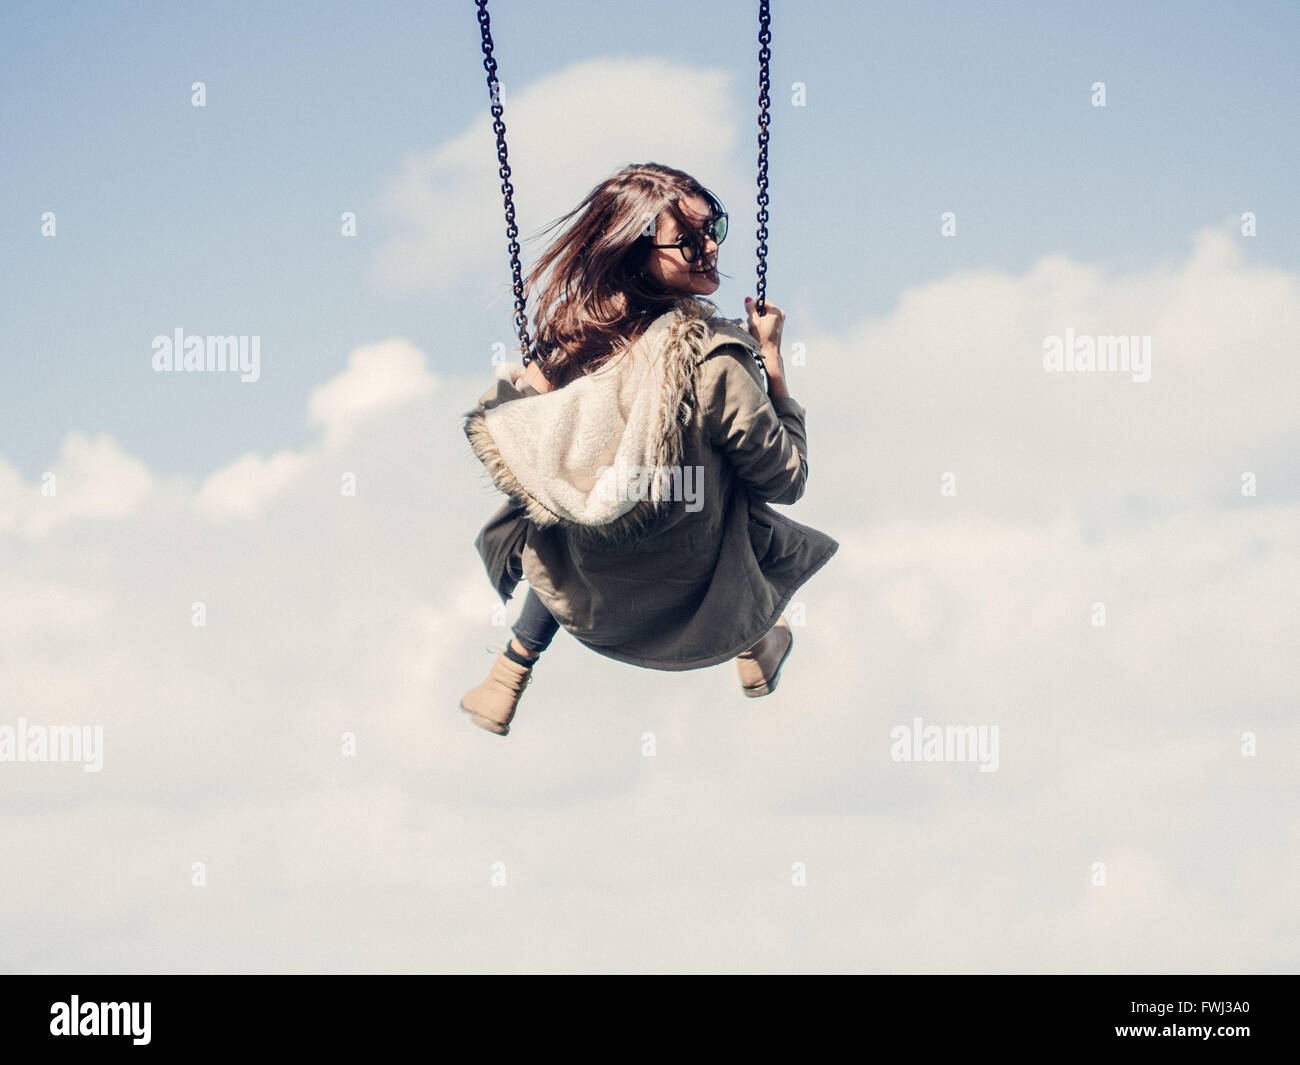 Low Angle View Of Woman On Swing Against Cloudy Sky - Stock Image